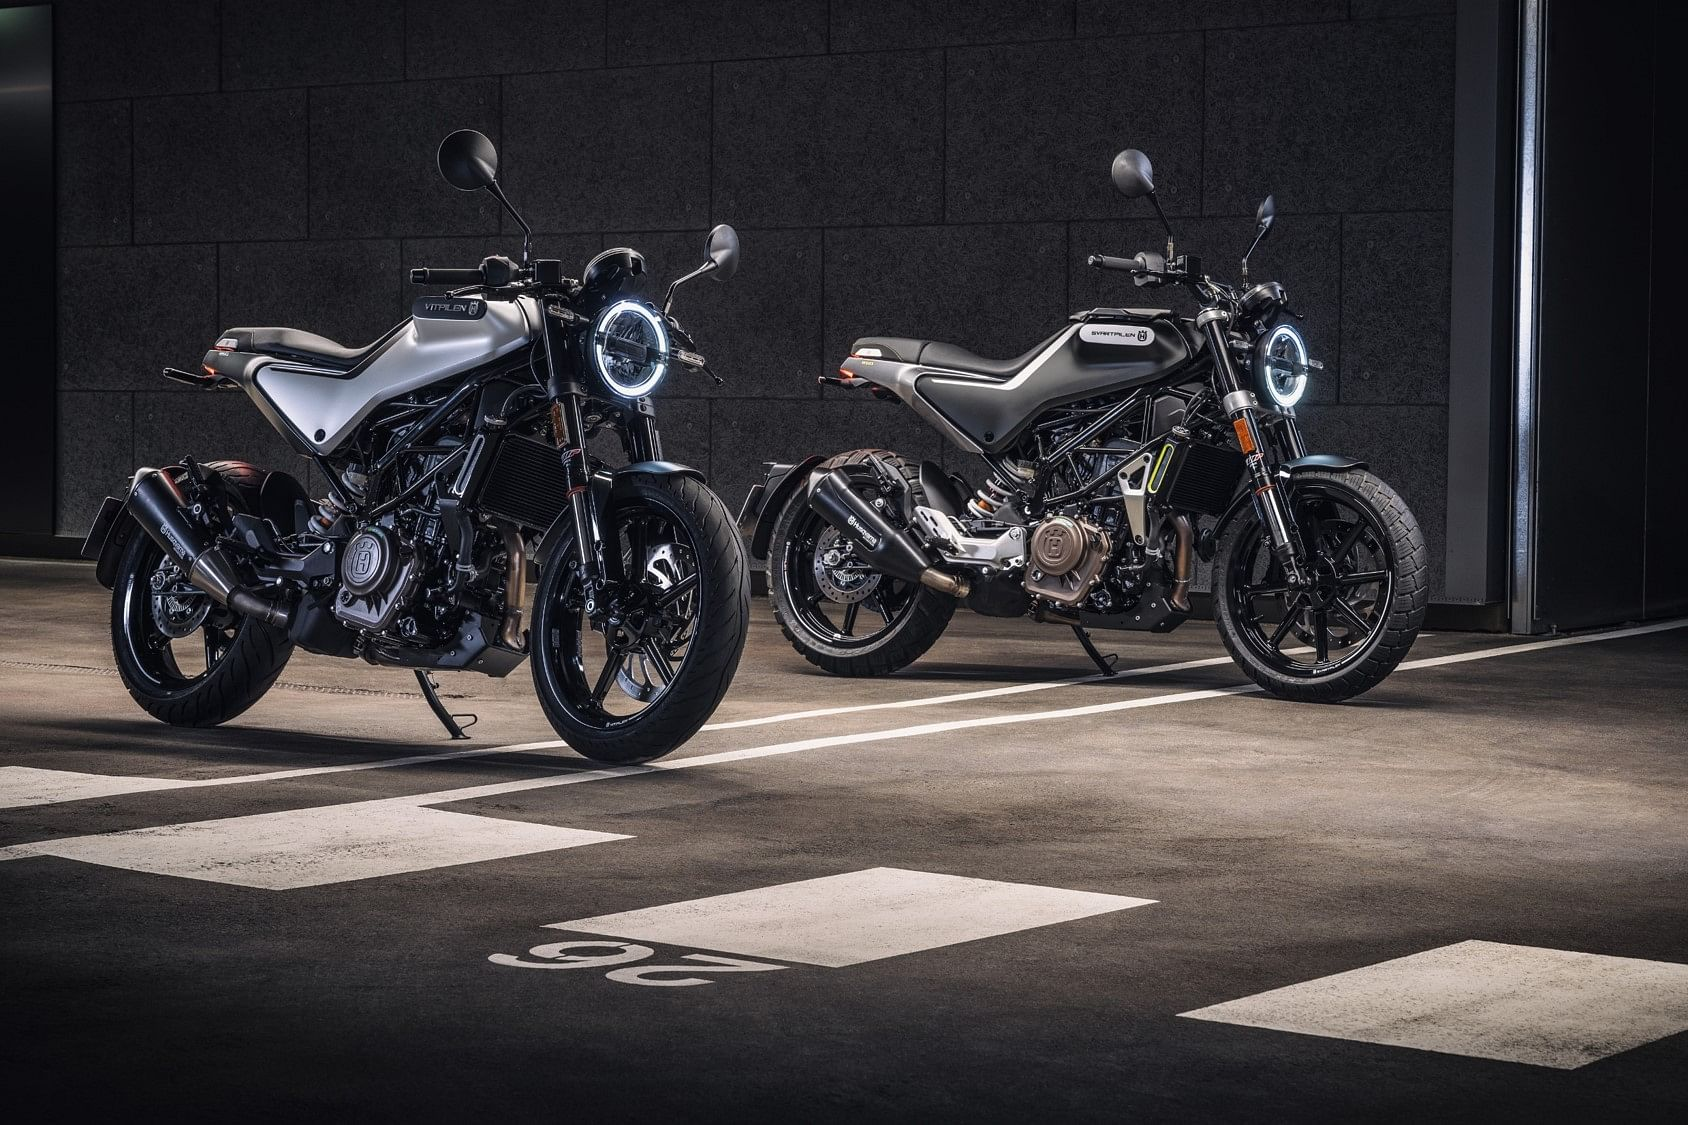 Husqvarna 250 Bikes Launch in India, Prices Start From Rs 1.8 Lakh